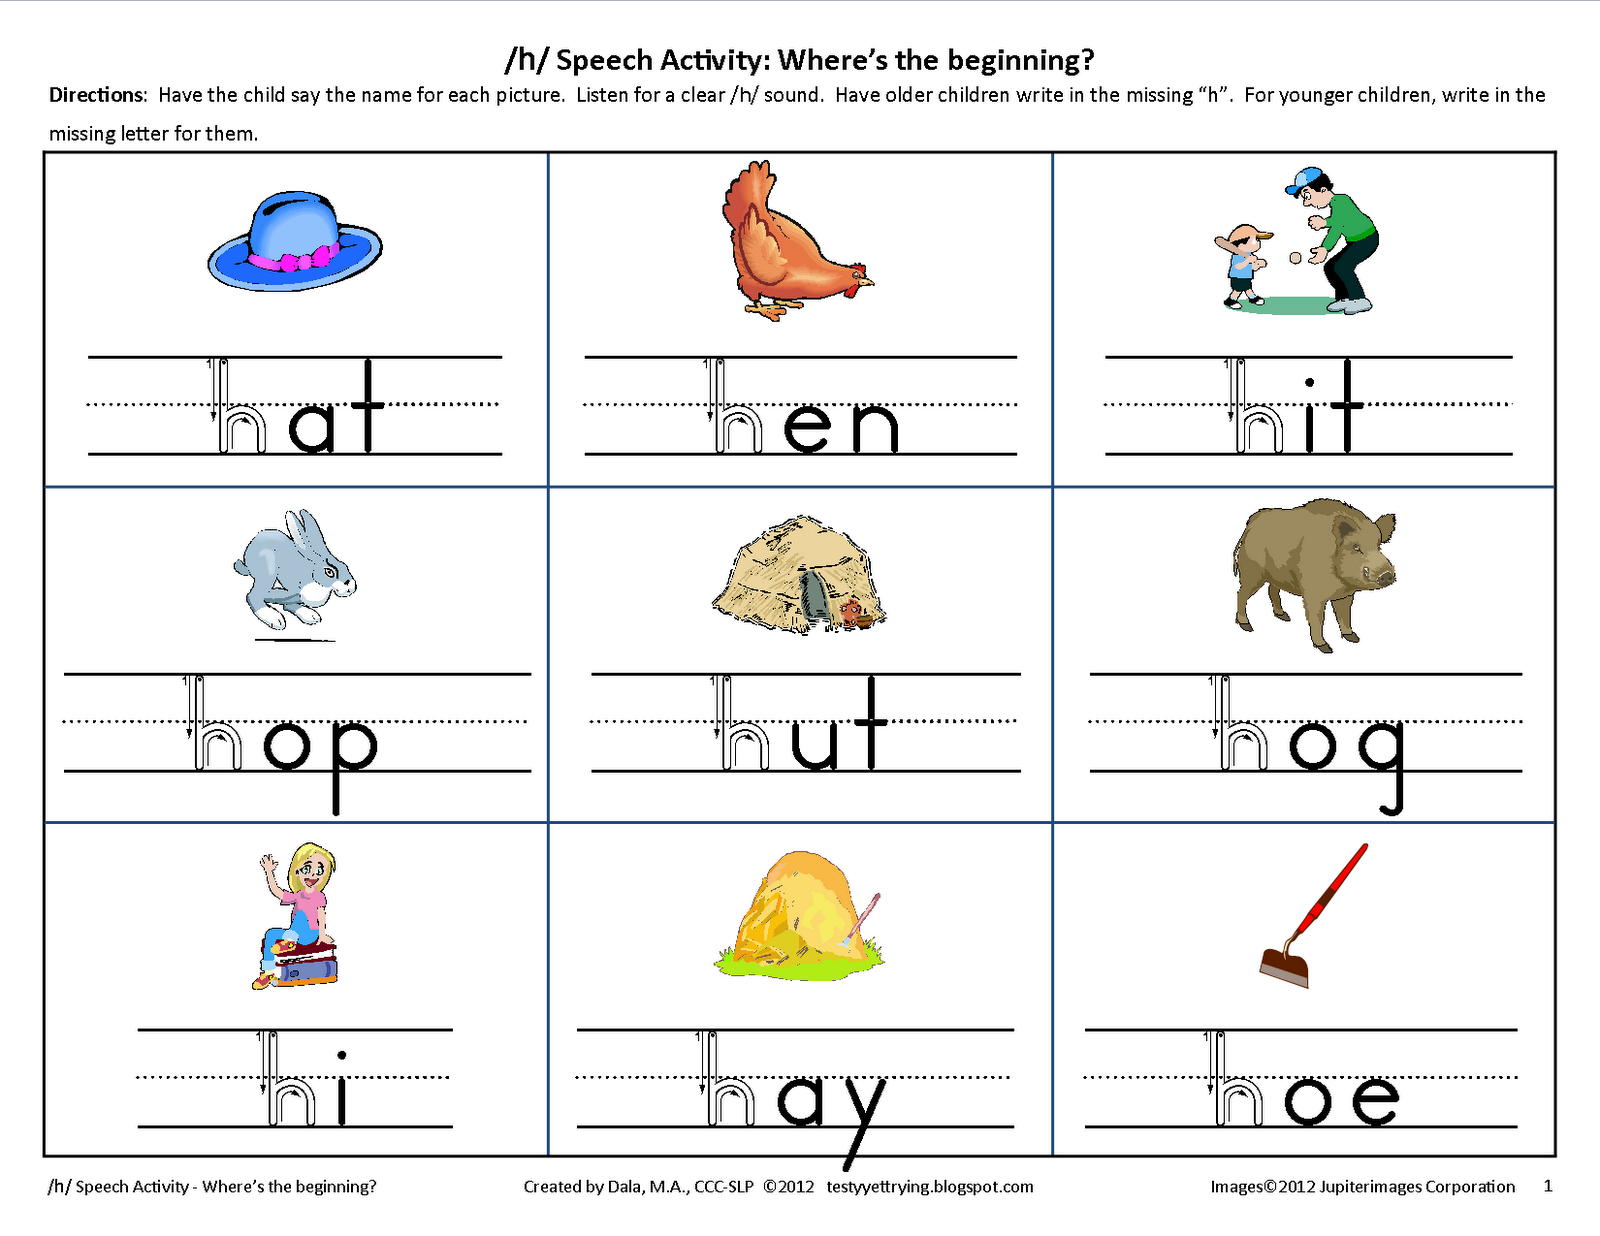 Weirdmailus  Unique Testy Yet Trying Initial H Speech Worksheet With Hot Make Classroom Teachers Happy Reinforce Phonics And Handwriting And Practice Speech All At The Same Time With Extraordinary Math Fact Cafe Multiplication Worksheets Also Prepositions Worksheets For Class  In Addition Year Three Maths Worksheets And Th Grade Math Worksheets Free Printable As Well As Basic Percentages Worksheet Additionally Easy Main Idea Worksheets From Testyyettryingblogspotcom With Weirdmailus  Hot Testy Yet Trying Initial H Speech Worksheet With Extraordinary Make Classroom Teachers Happy Reinforce Phonics And Handwriting And Practice Speech All At The Same Time And Unique Math Fact Cafe Multiplication Worksheets Also Prepositions Worksheets For Class  In Addition Year Three Maths Worksheets From Testyyettryingblogspotcom